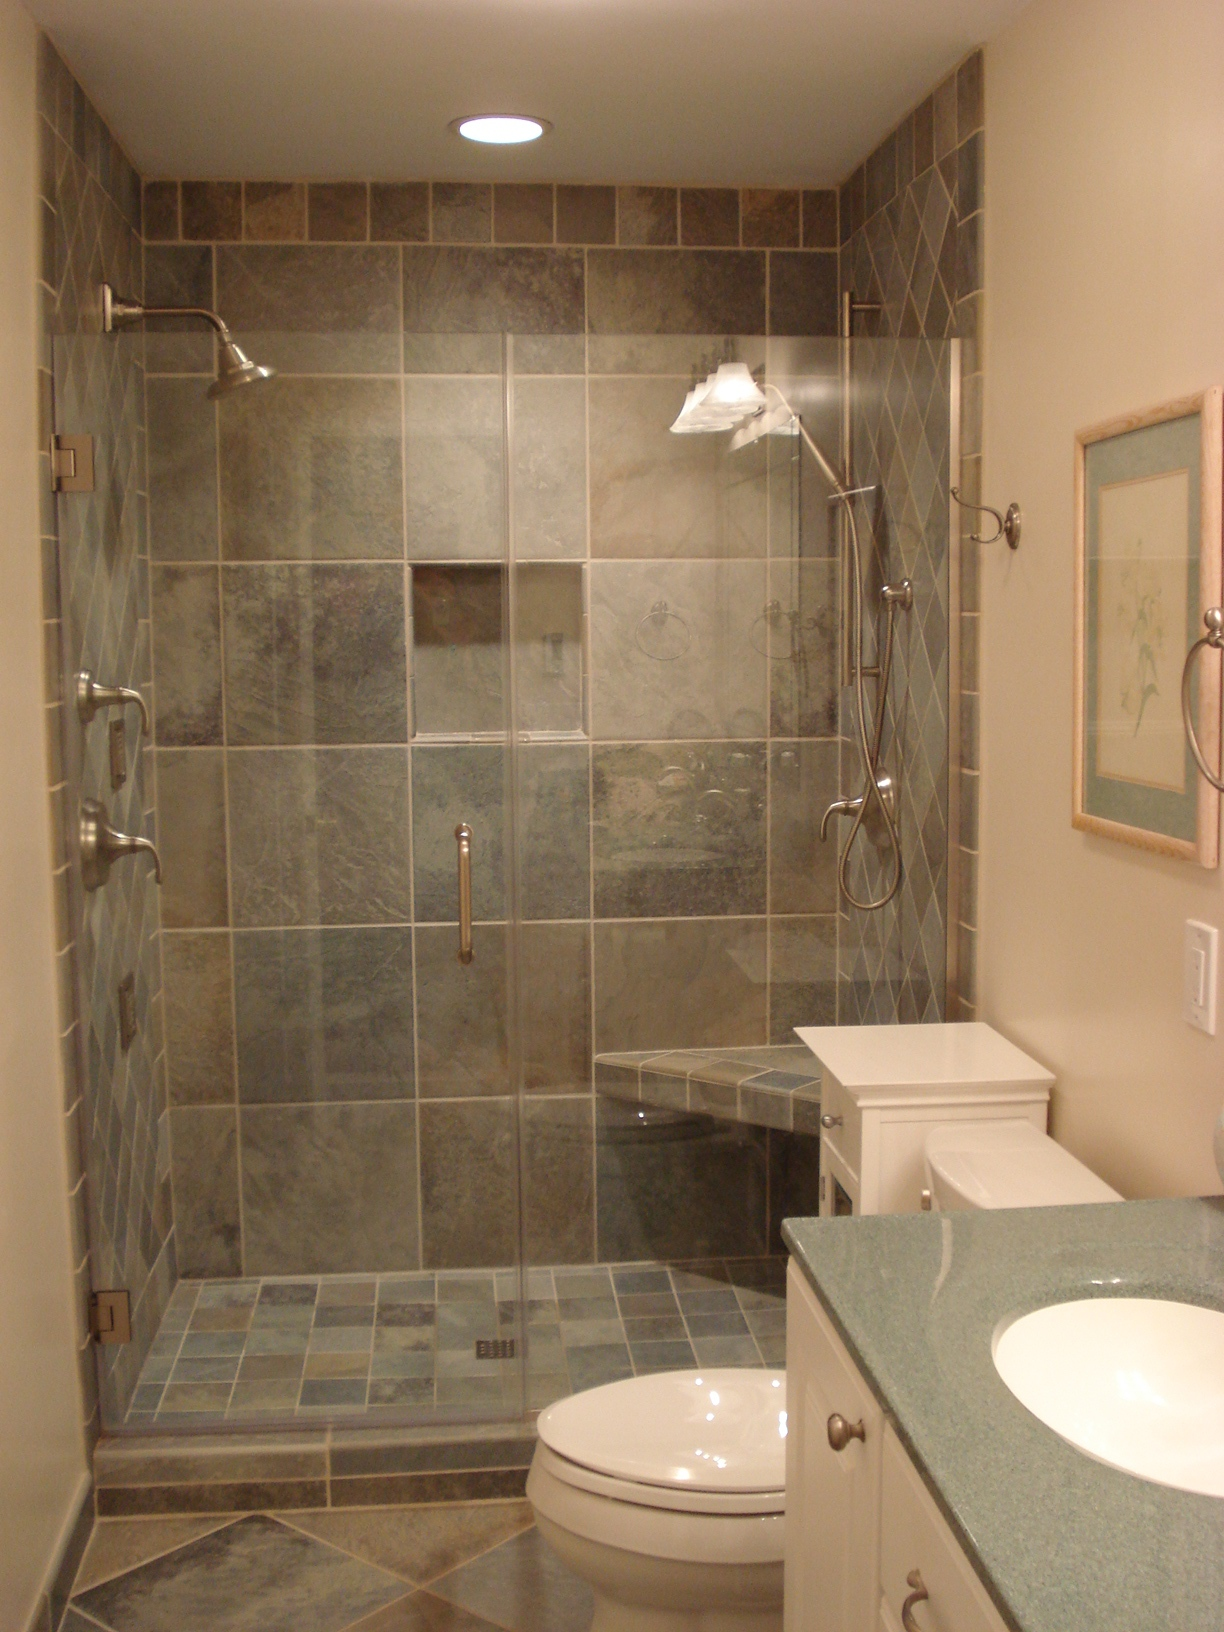 Lifetime design build inc completed projects for Bathroom renovations